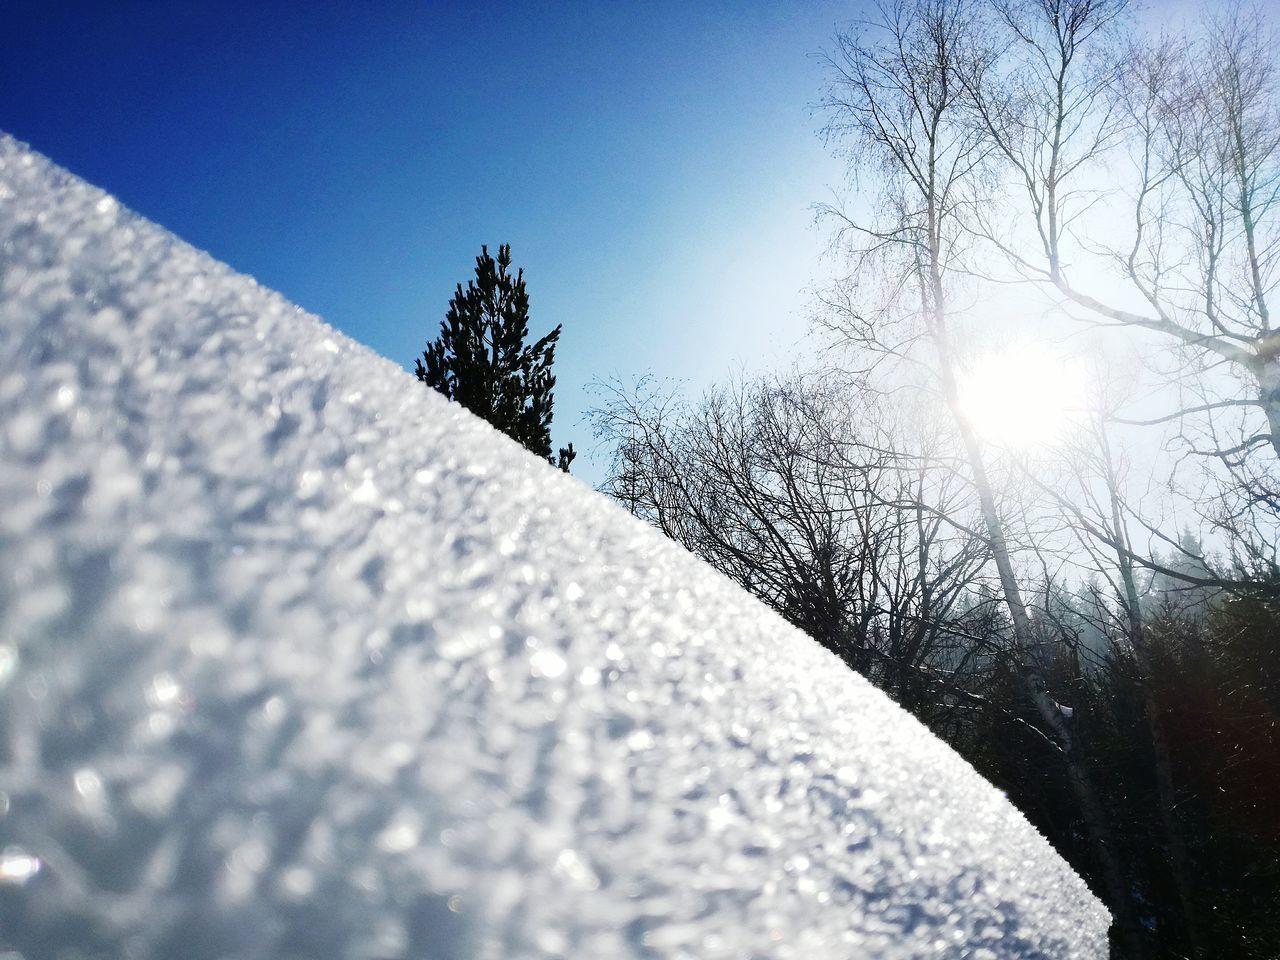 Sunlight Tree Nature Close-up No People Sky Beauty In Nature Cold Temperature Snow Sunbeam Outdoors Day Water Freshness Vitosha National Park Vitosha Mountain Sofia, Bulgaria Bulgaria Vitosha Mountain Nature Low Angle View Tree Snow ❄ Sun Sunlight Sunlight And Shadow